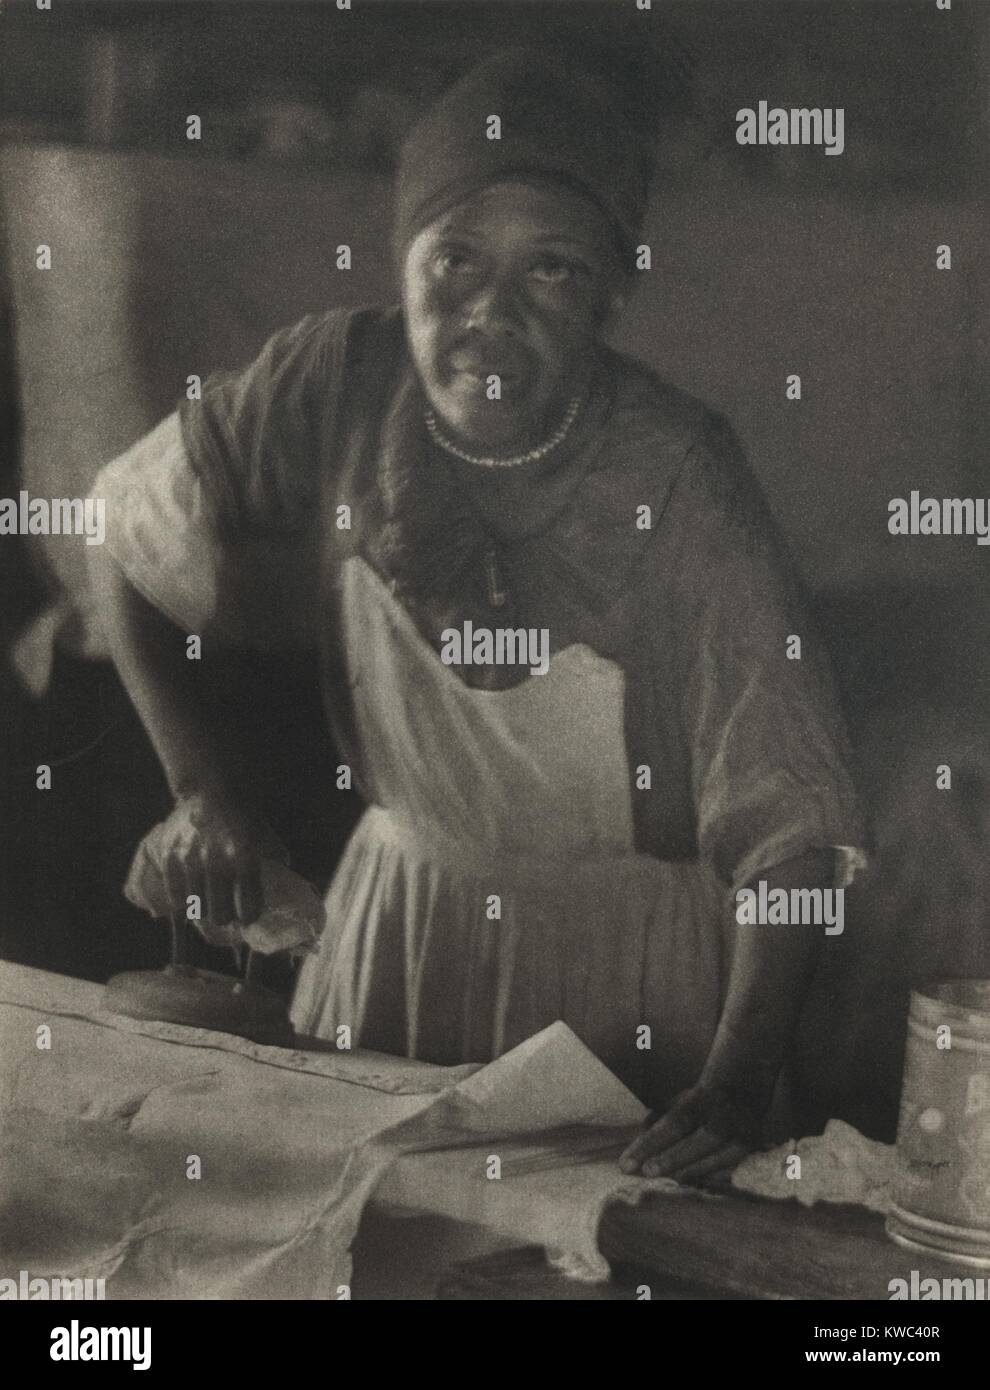 African American woman ironing, ca. 1930. Photogravure of image by Doris Ulmann. She is best known for her sensitive - Stock Image